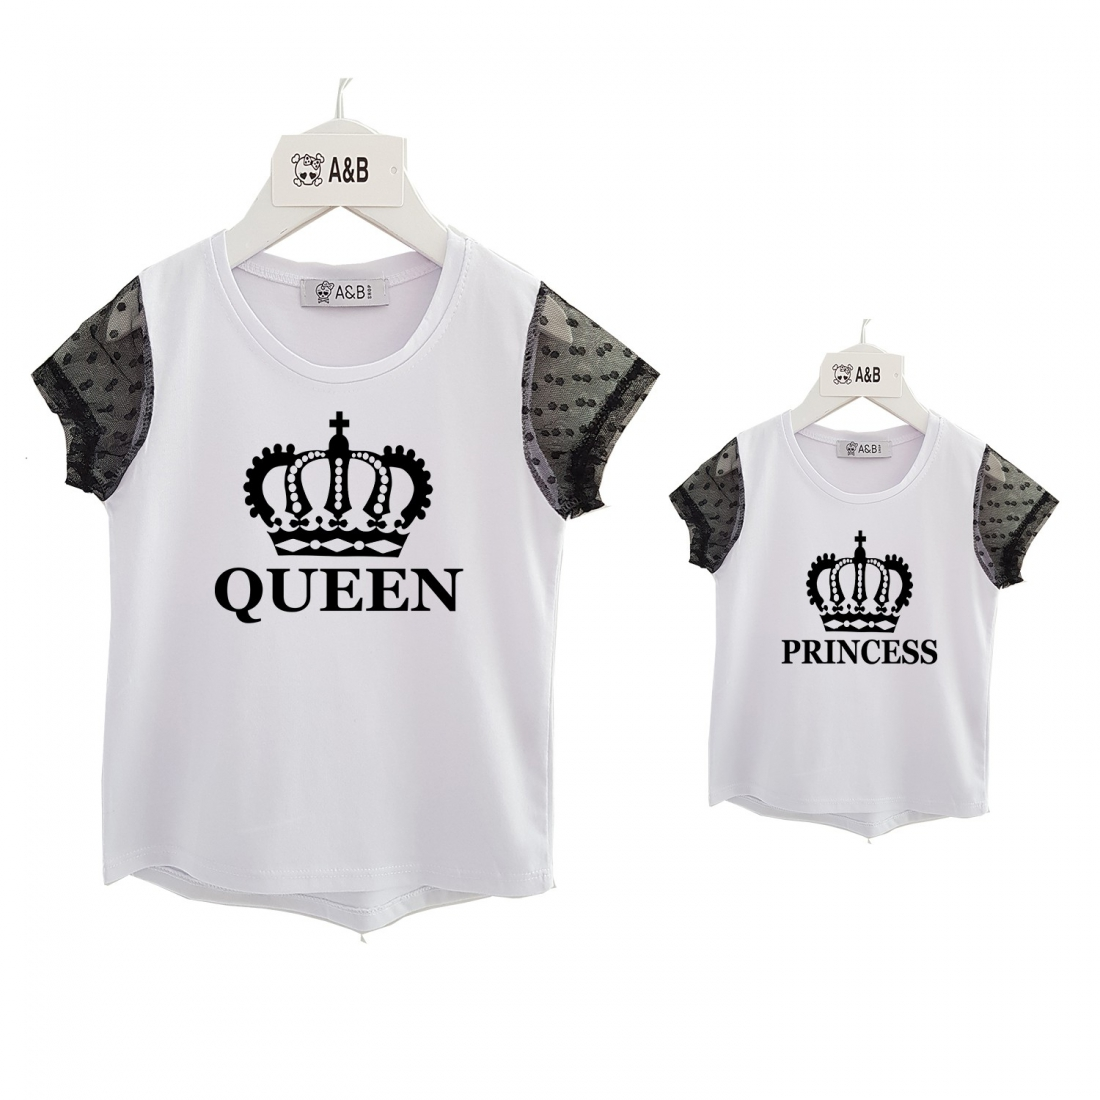 Tulle chic t-shirt